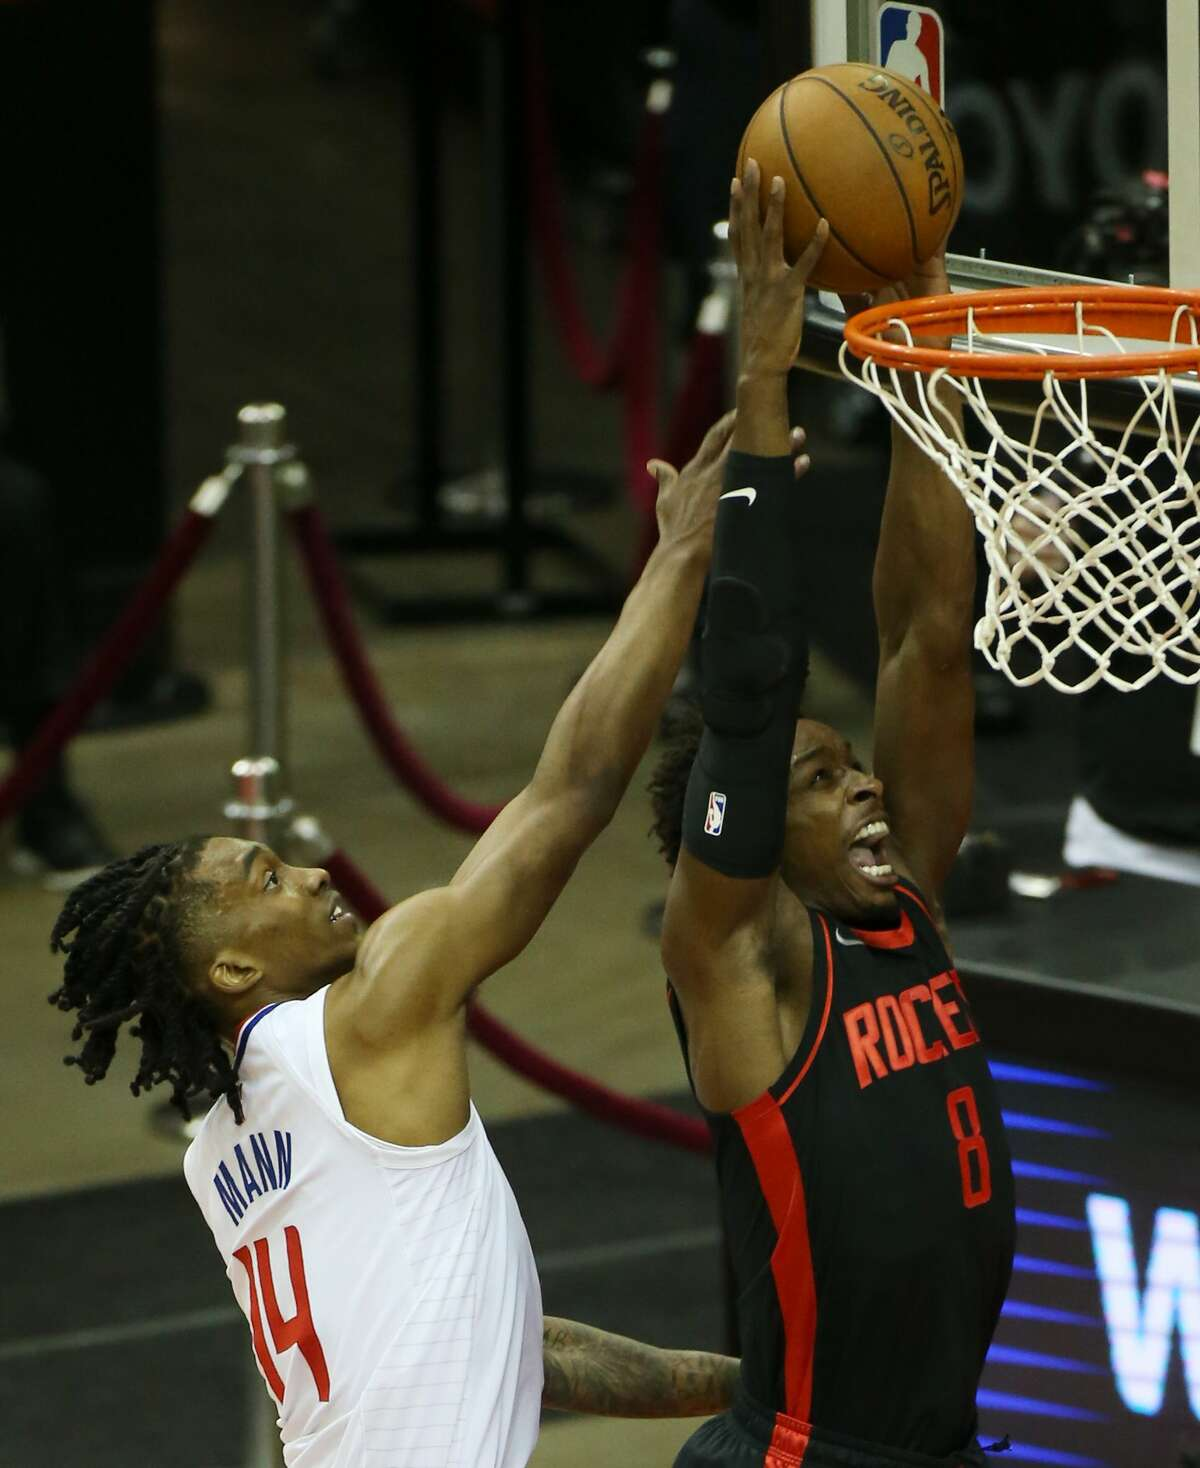 Houston Rockets forward Jae'Sean Tate (8) dunks the ball around LA Clippers guard Terance Mann (14) in the first half of game action at the Toyota Center in Houston on Friday, April 23, 2021.